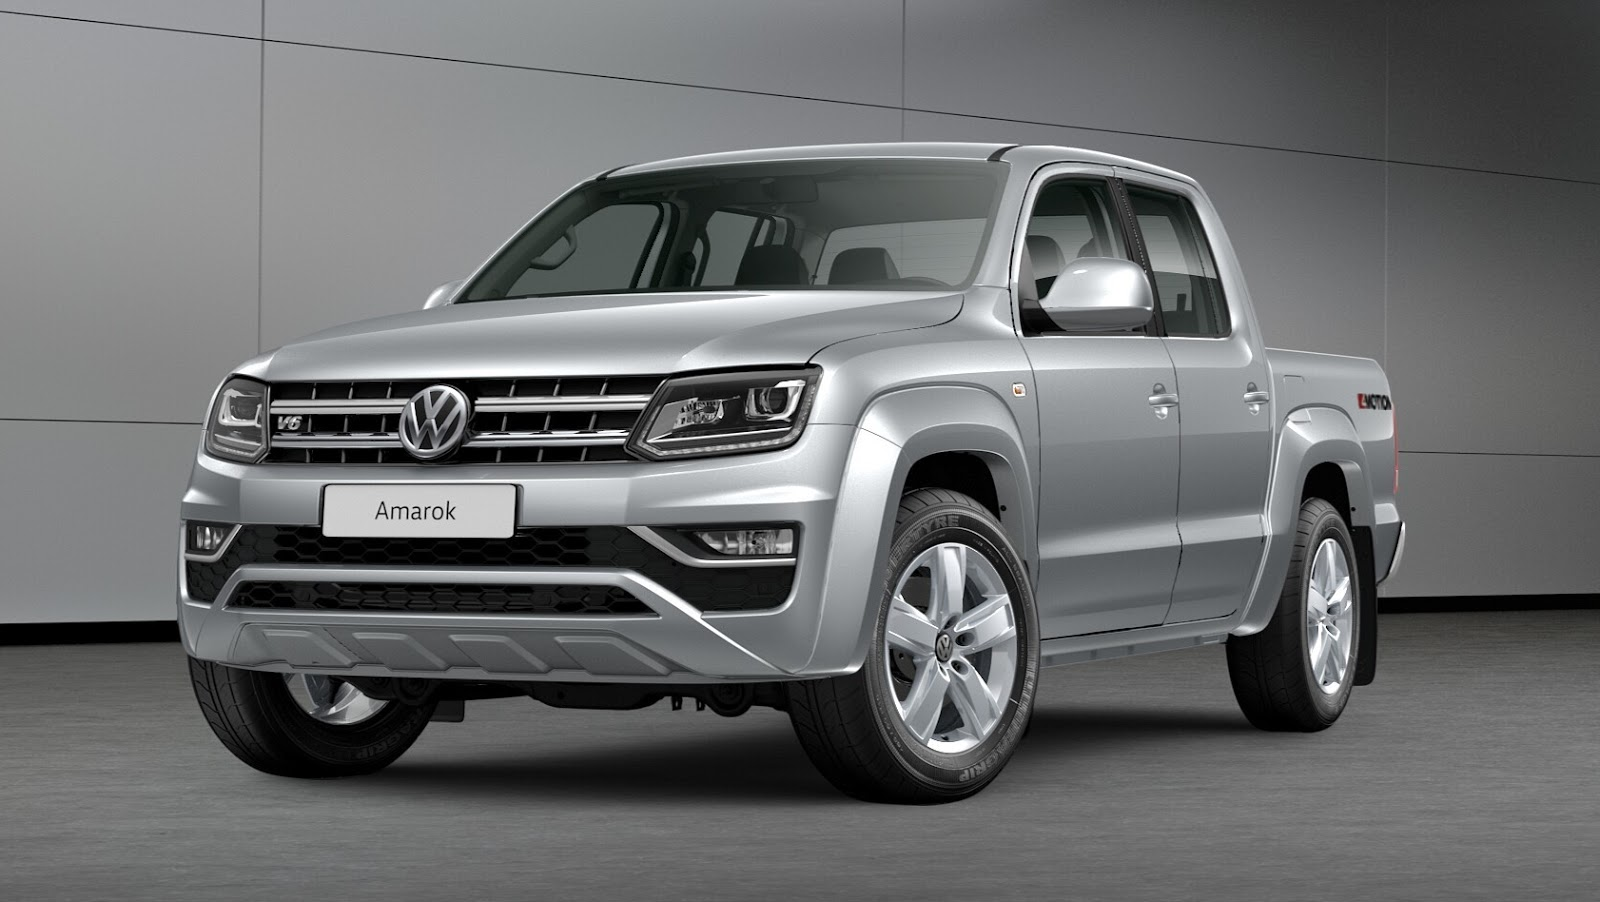 lanzamiento volkswagen amarok v6 tdi autoblog uruguay. Black Bedroom Furniture Sets. Home Design Ideas